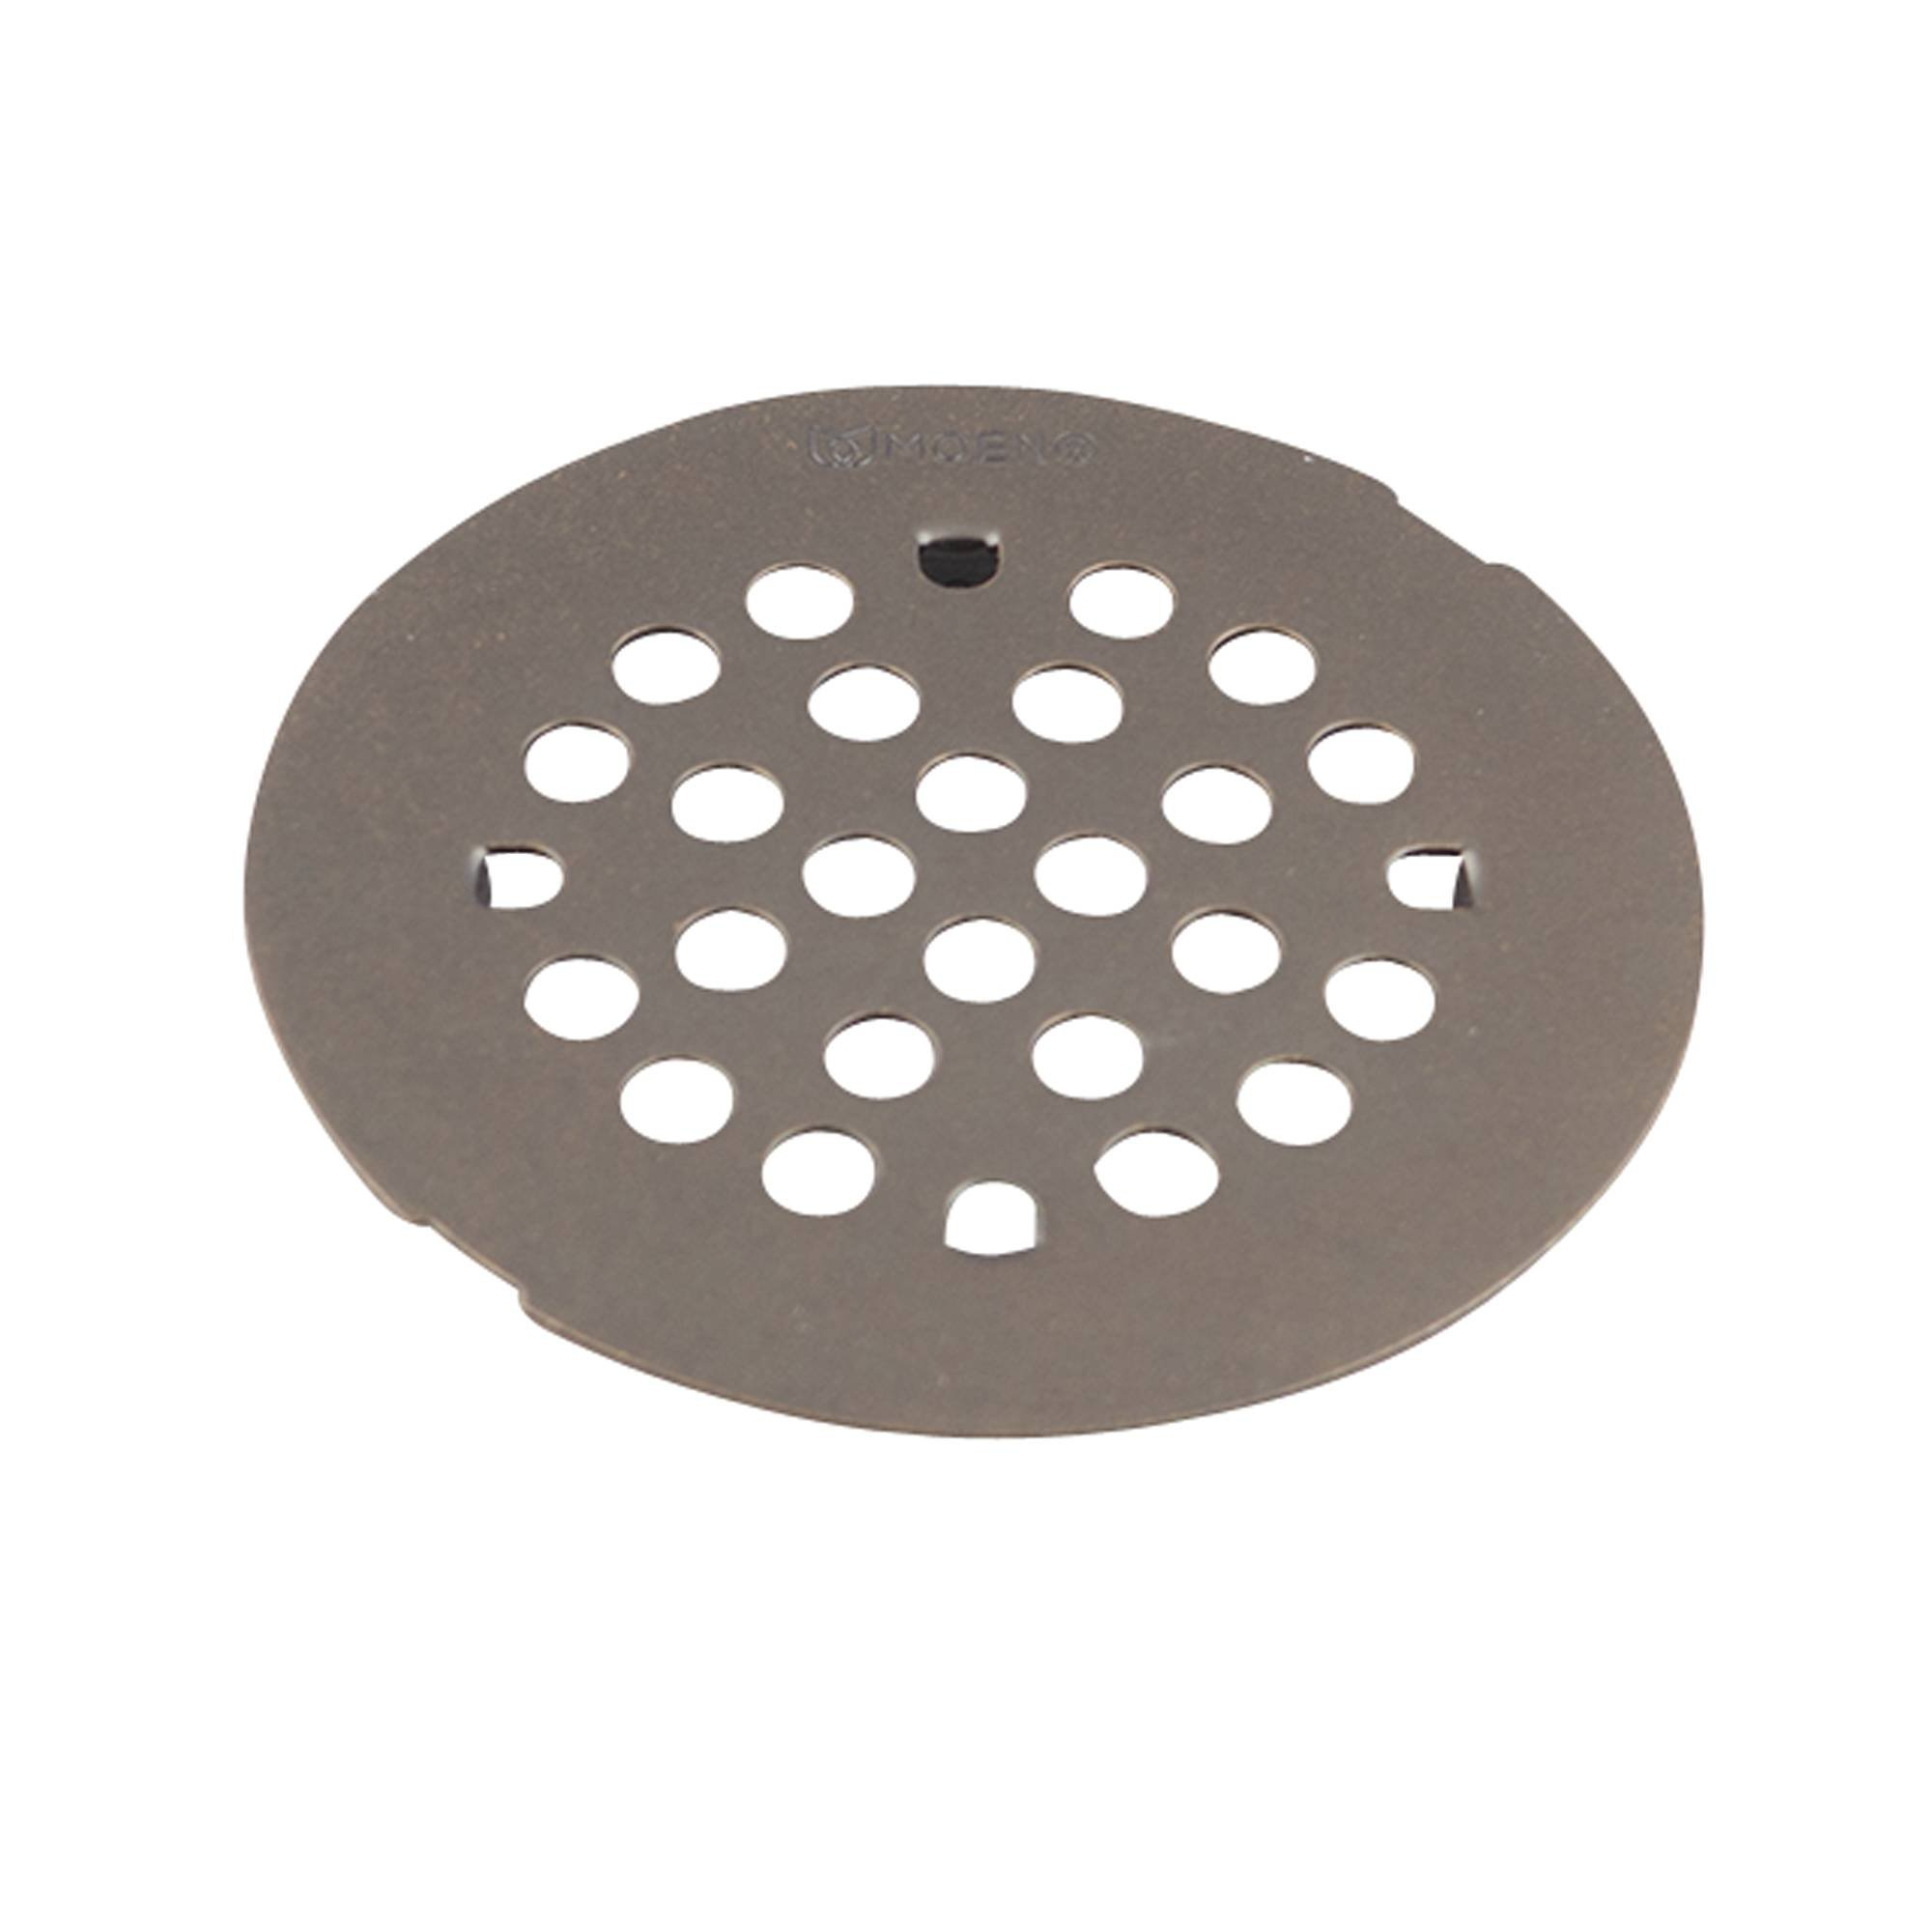 Moen 101663ORBMOENF Kingsley 4-1/4-Inch Snap-In Shower Drain Cover, Oil Rubbed Bronze